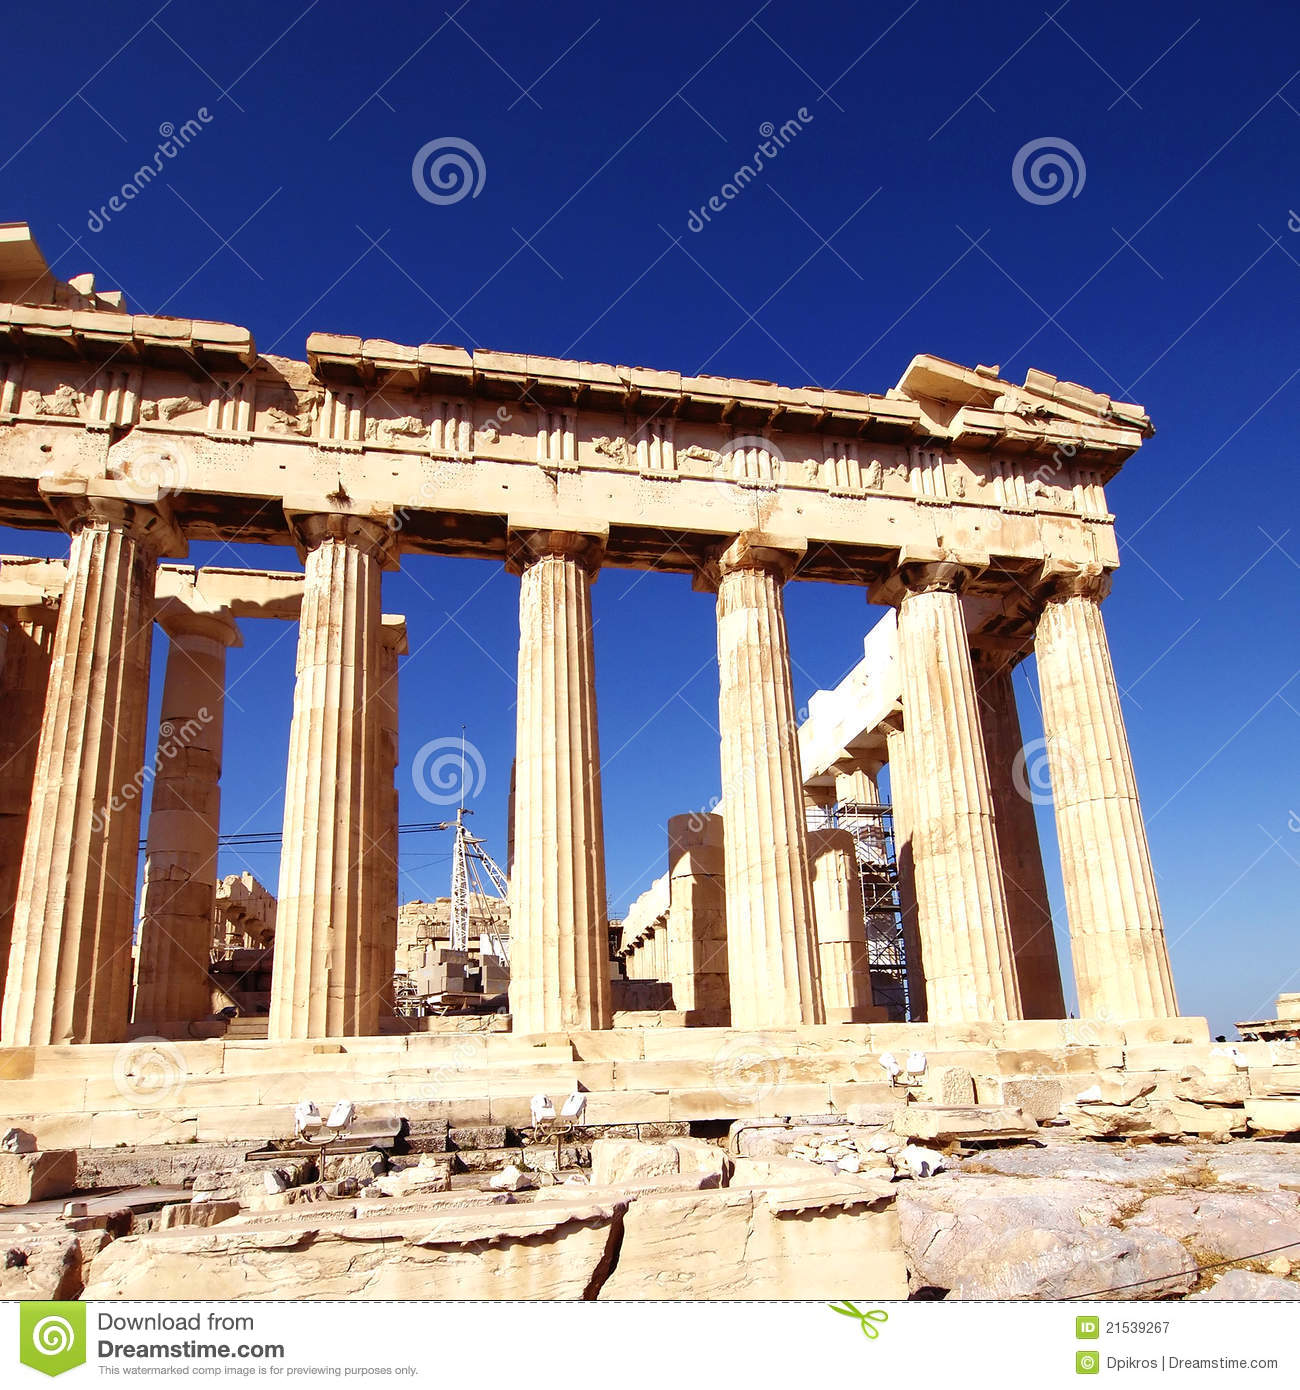 a history and description of parthenon a masterpiece of greek architecture The parthenon marks an important turning point in the history of western architecture not only for inaugurating a new type of building design, but also because it suggests that the ancient greeks had begun to embrace a novel way of looking at the world.